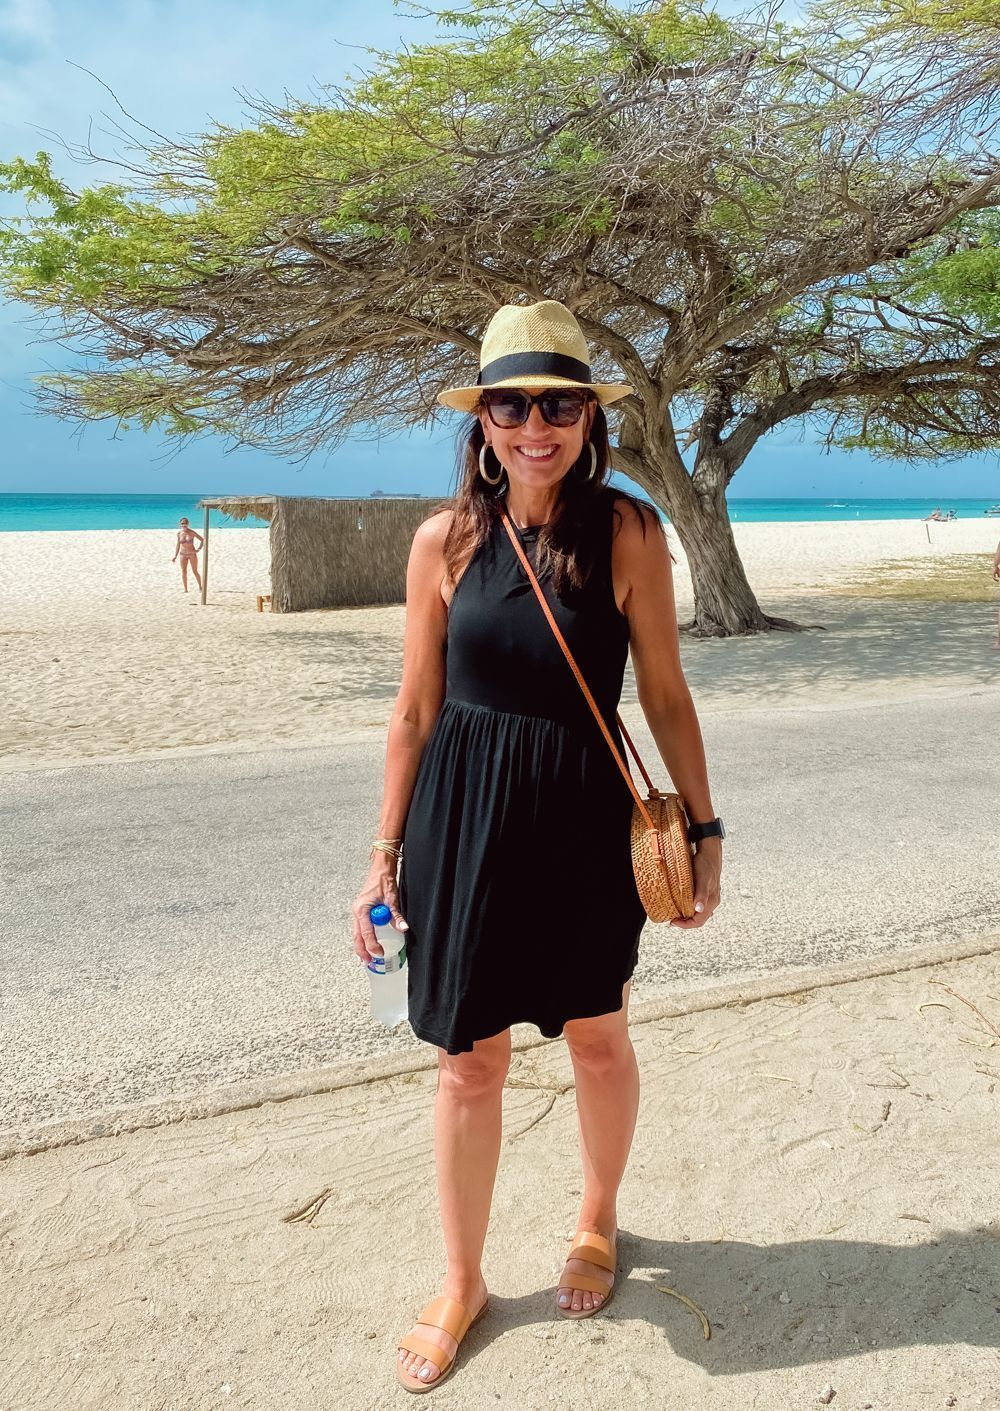 A Day in Aruba | summer outfits women over 40 beach cruise wear | beach wear